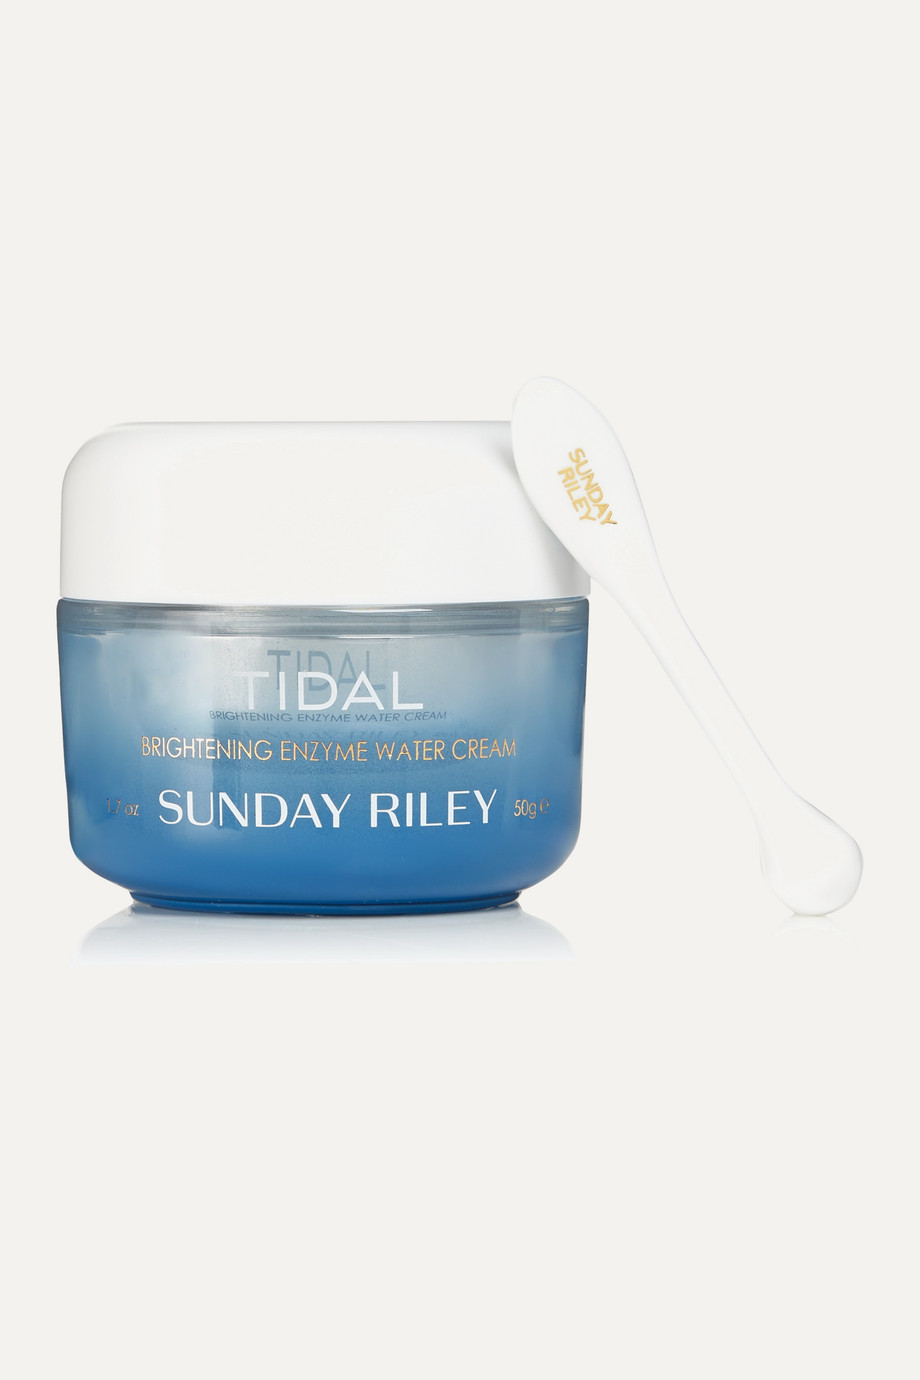 Sunday Riley Tidal Brightening Enzyme Water Cream, 50ml